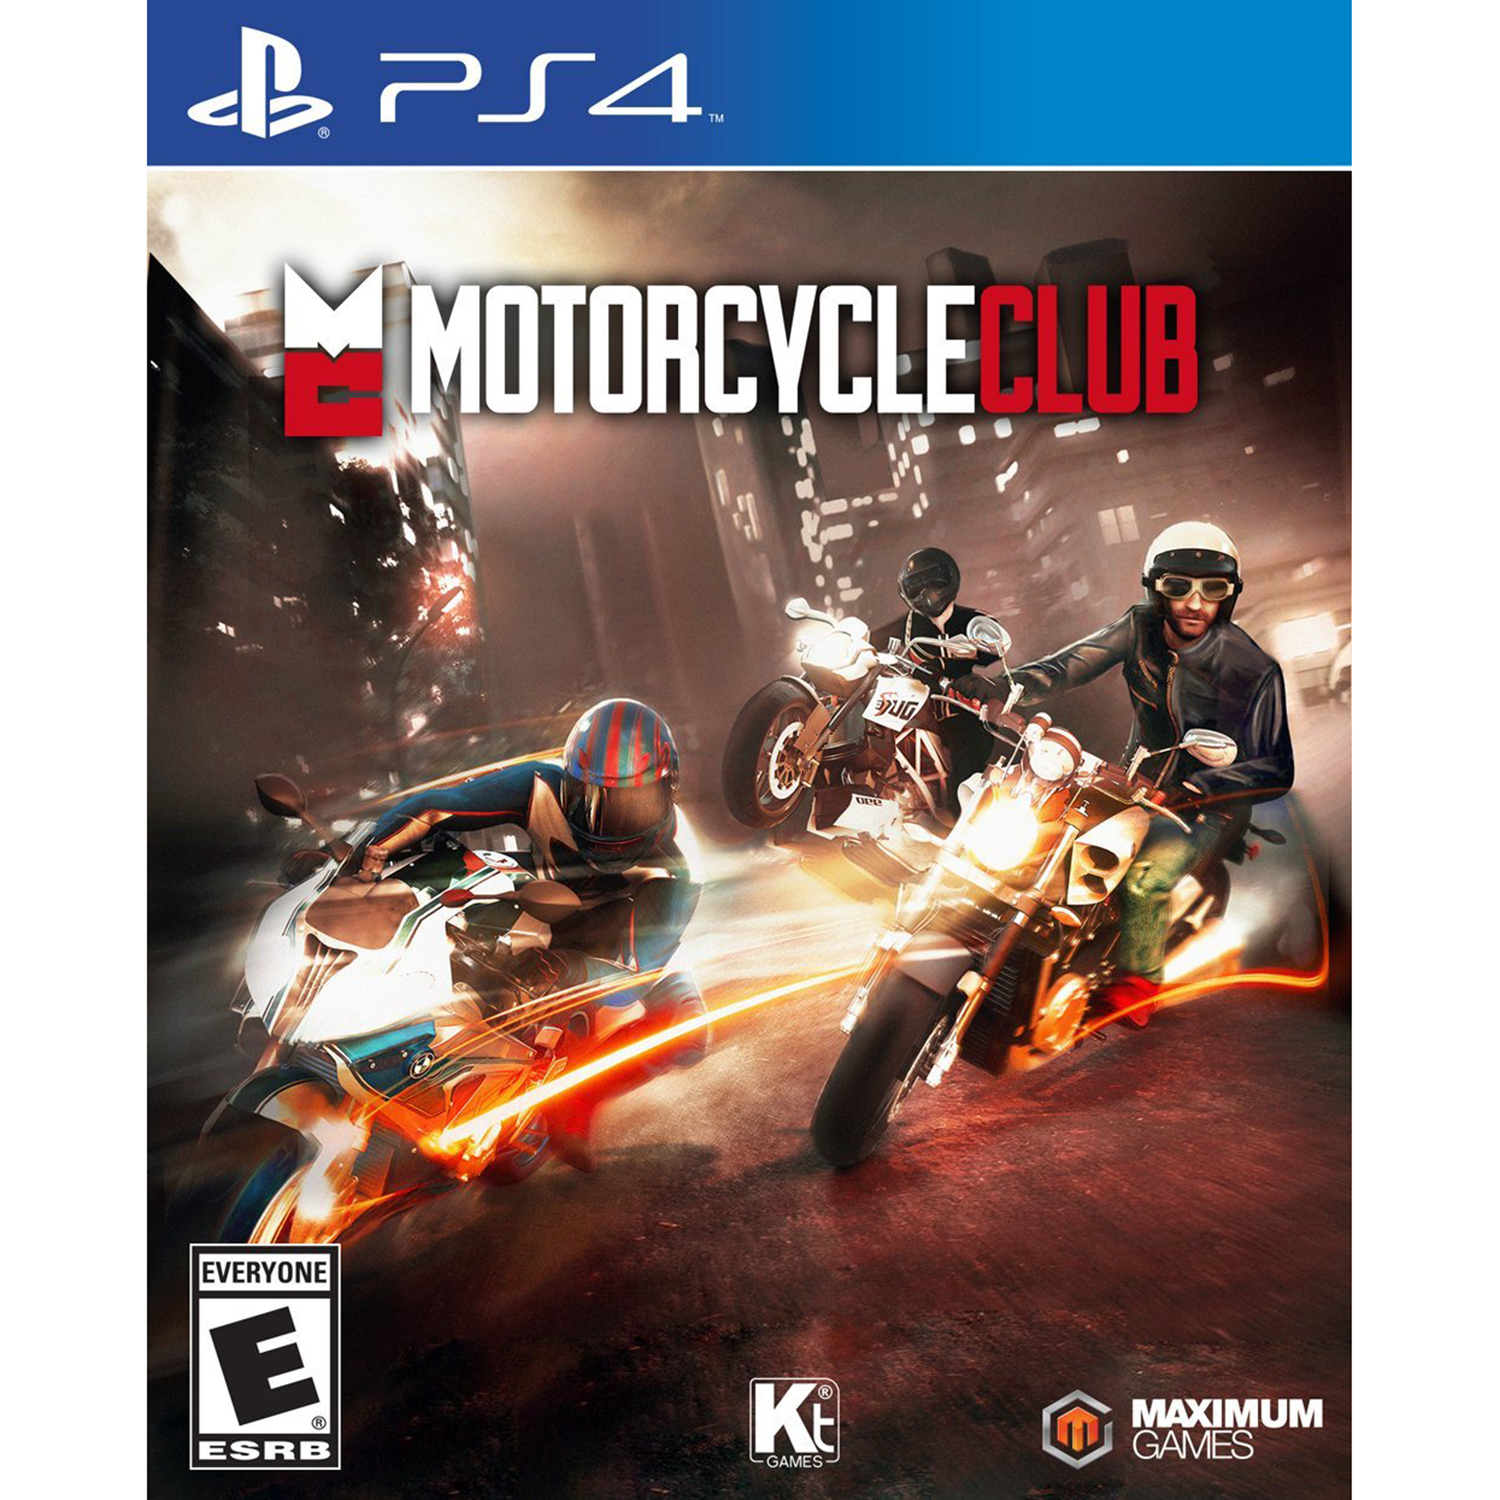 Sony PlayStation 4 Motorcycle Club Video Game